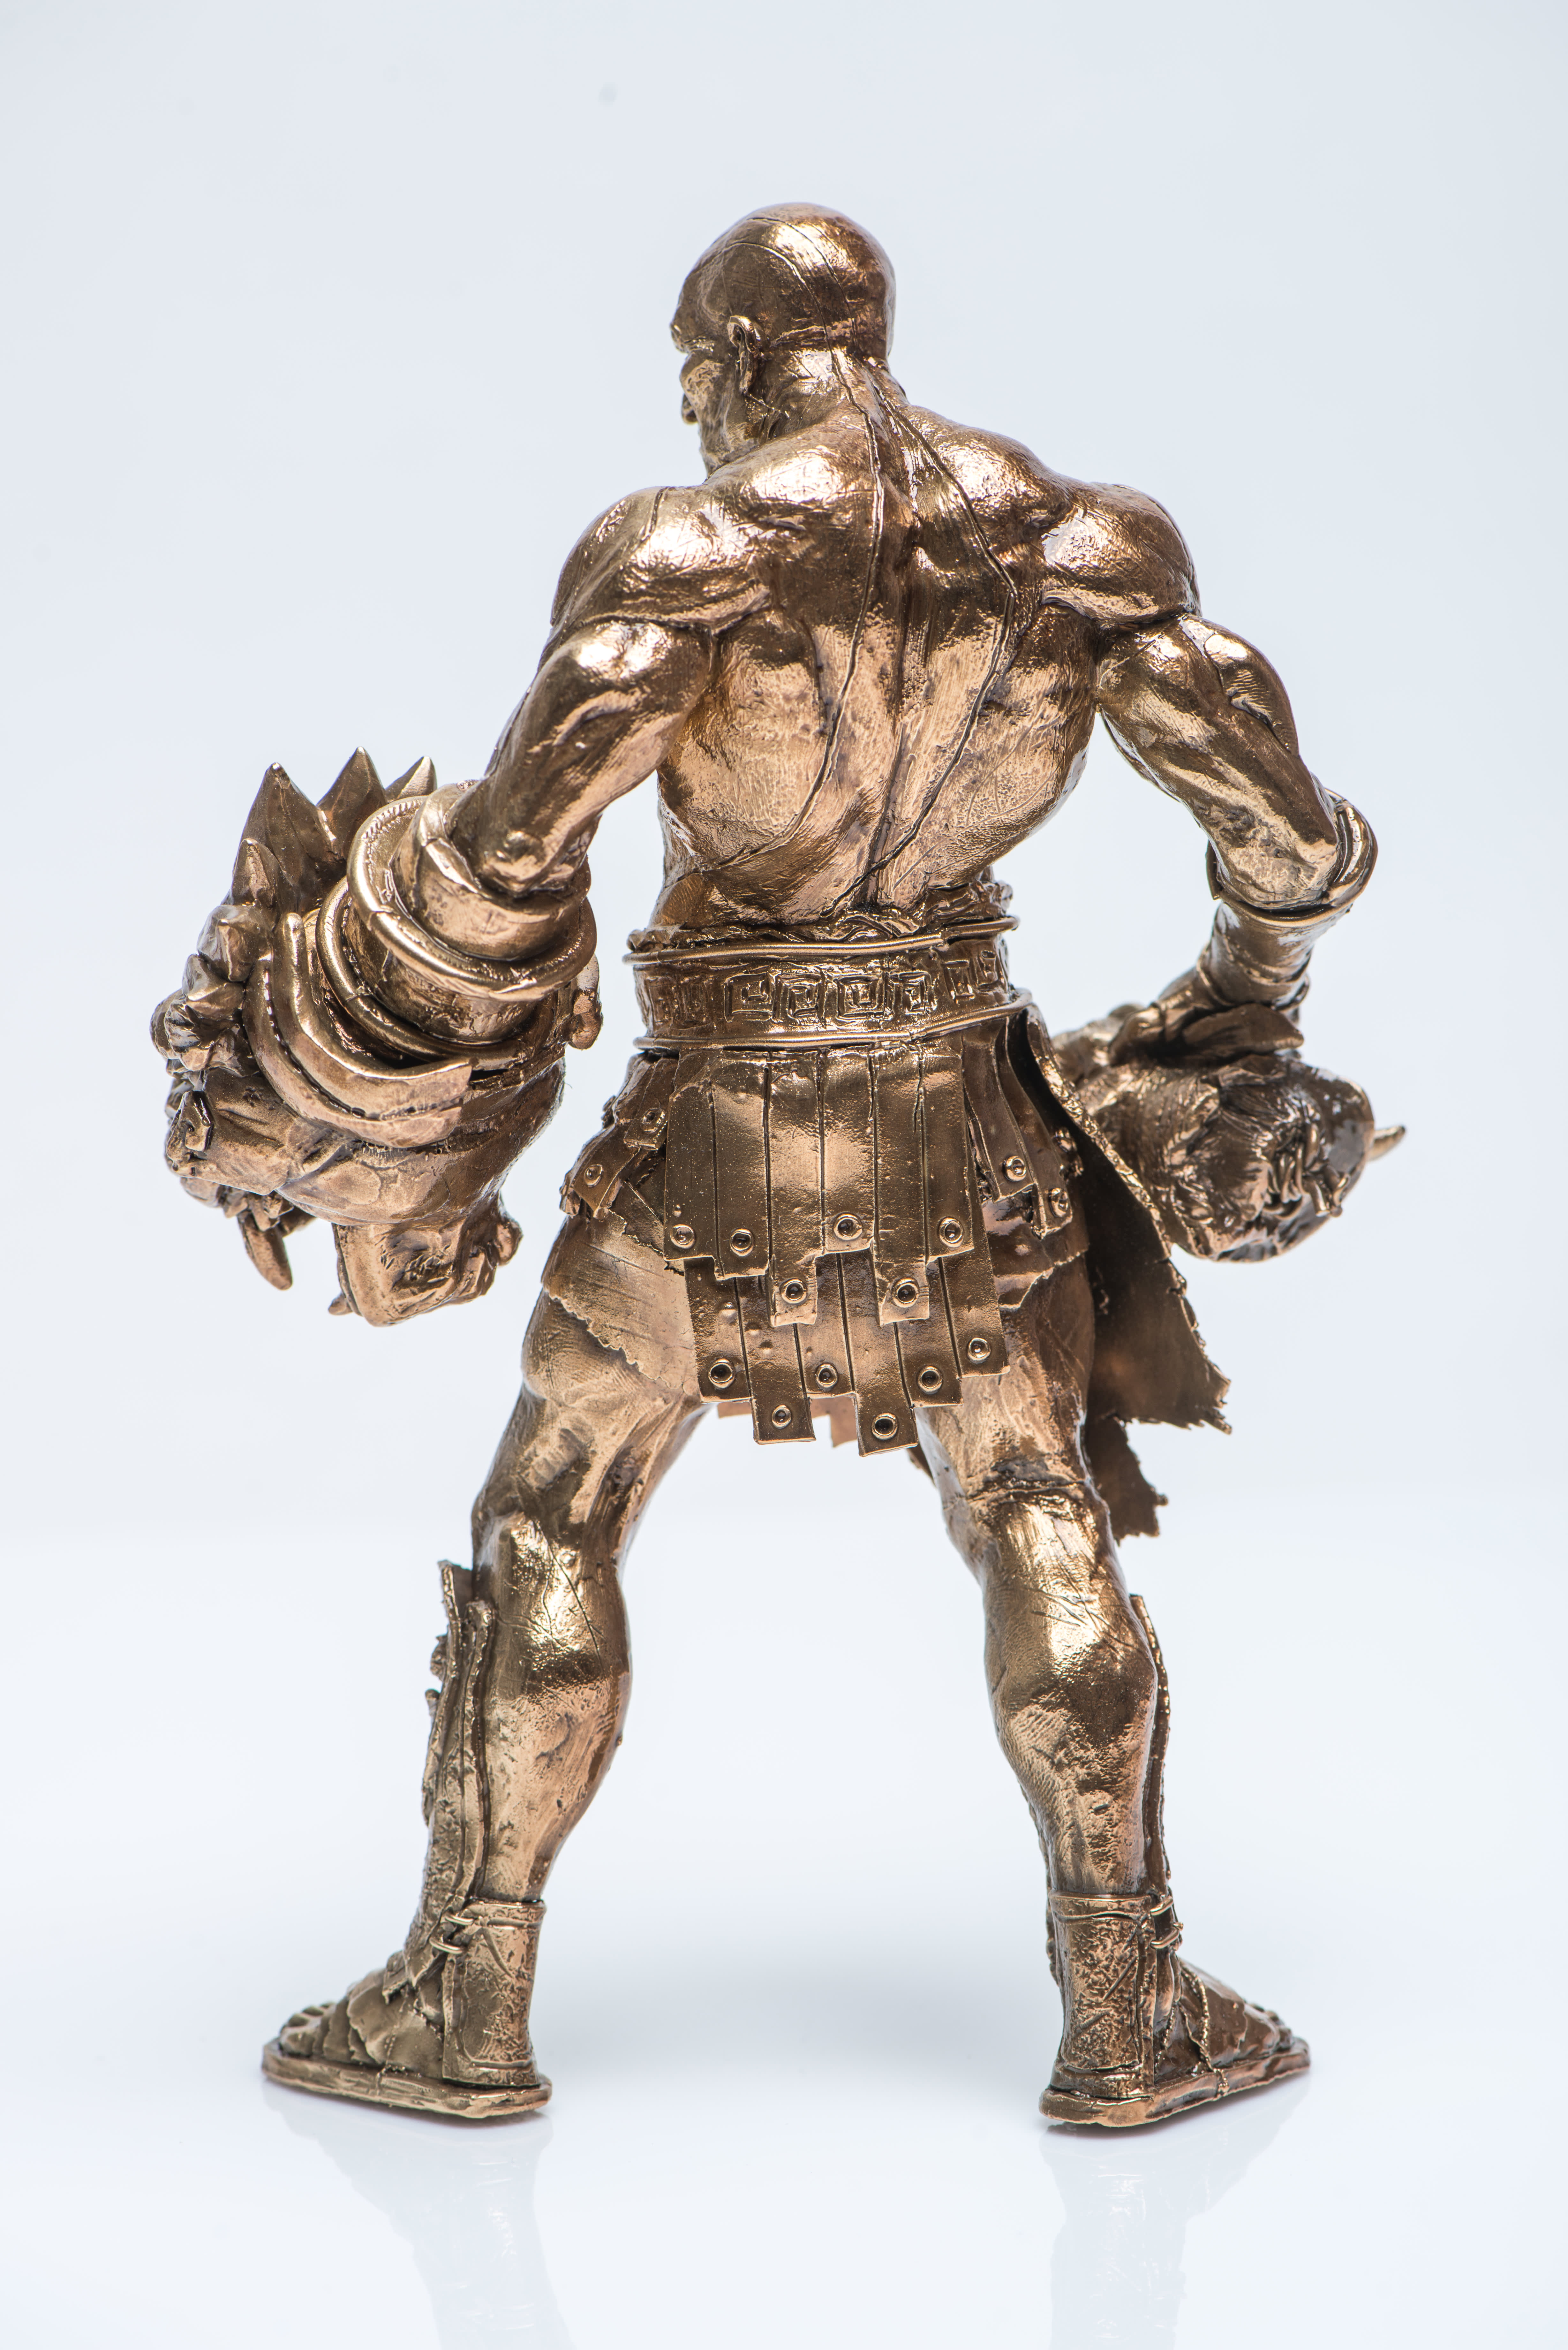 Metal Casted Character Back View